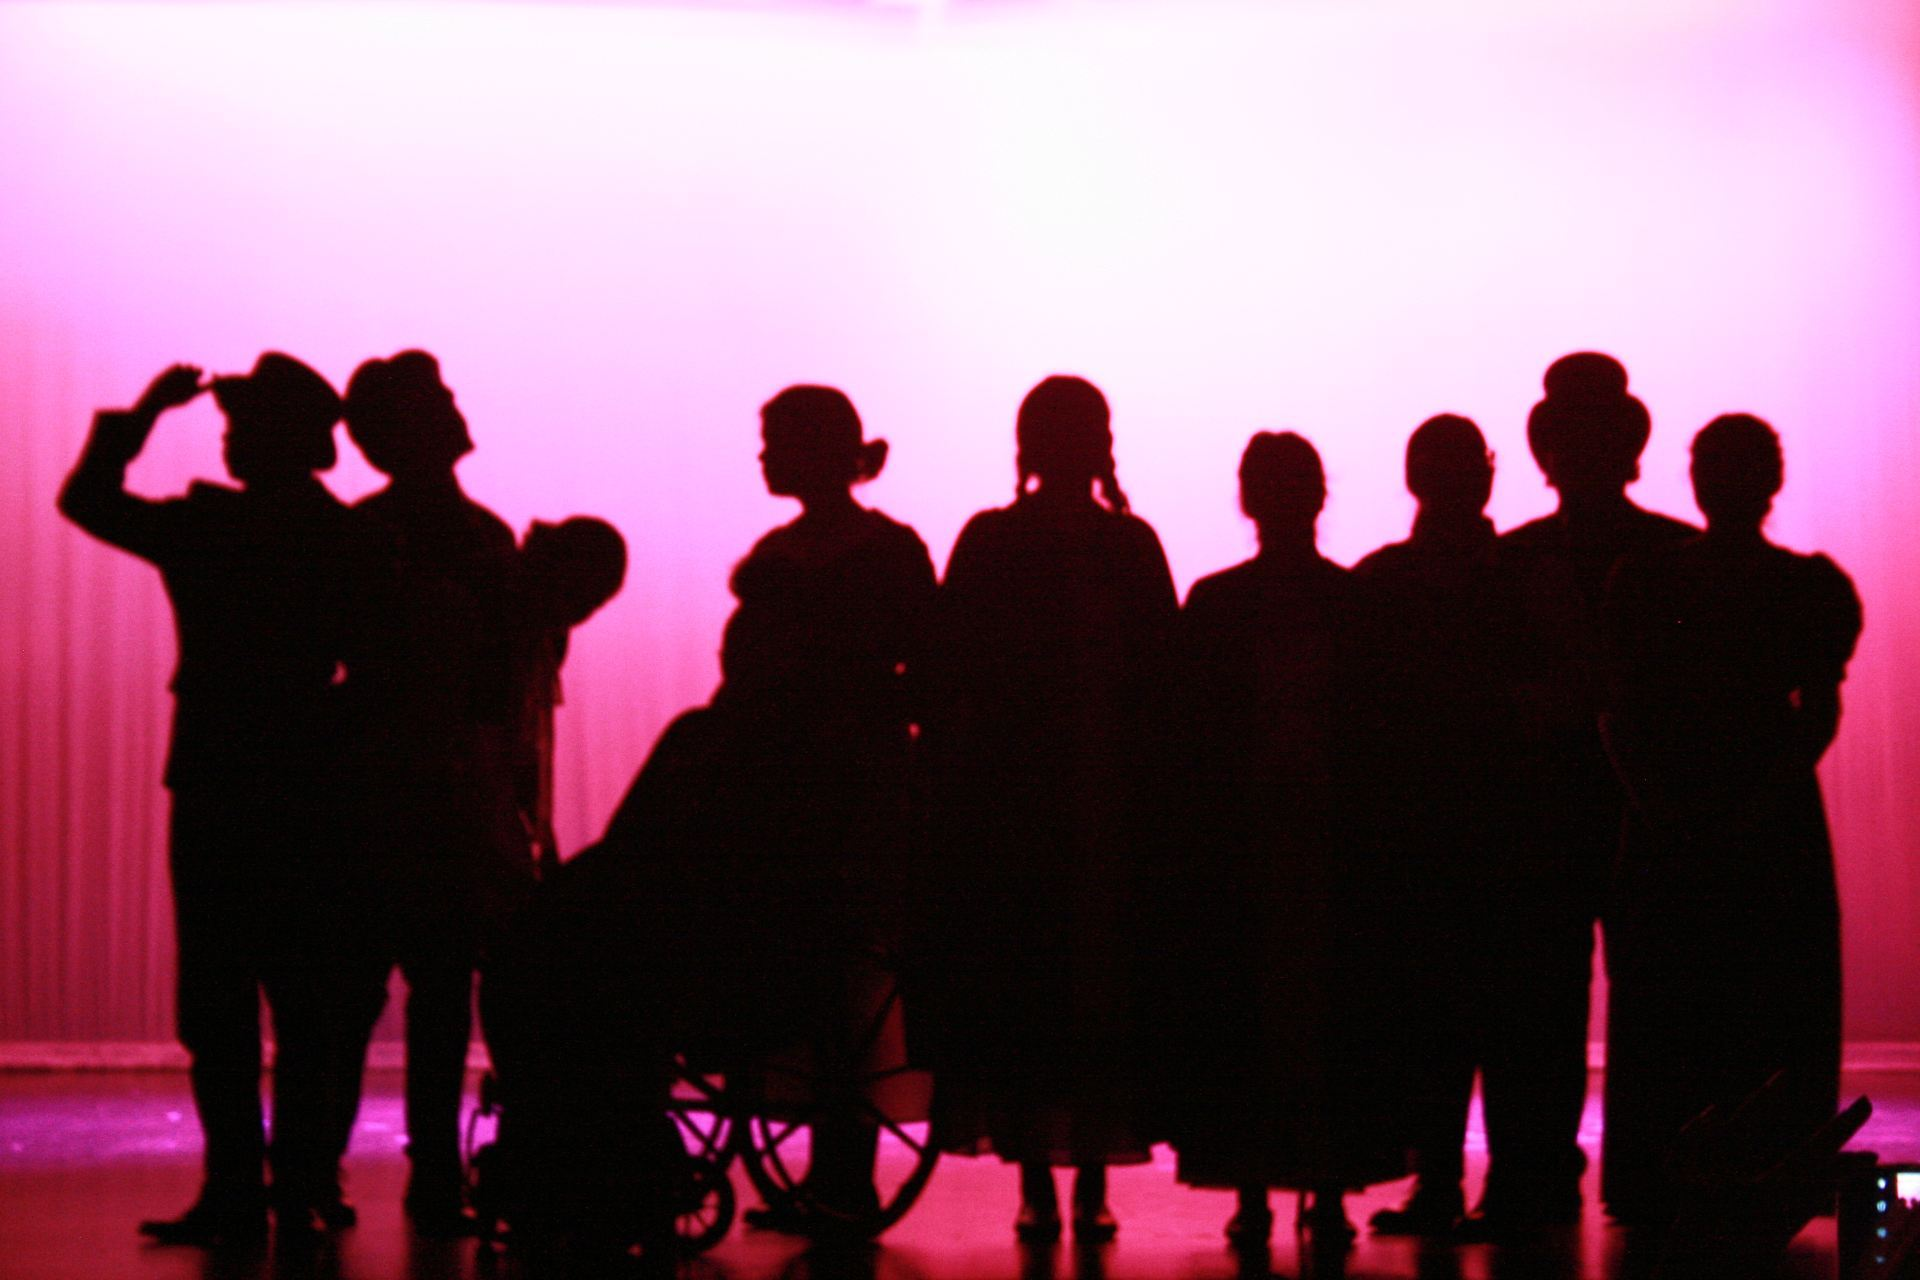 Silhouette of actors on stage